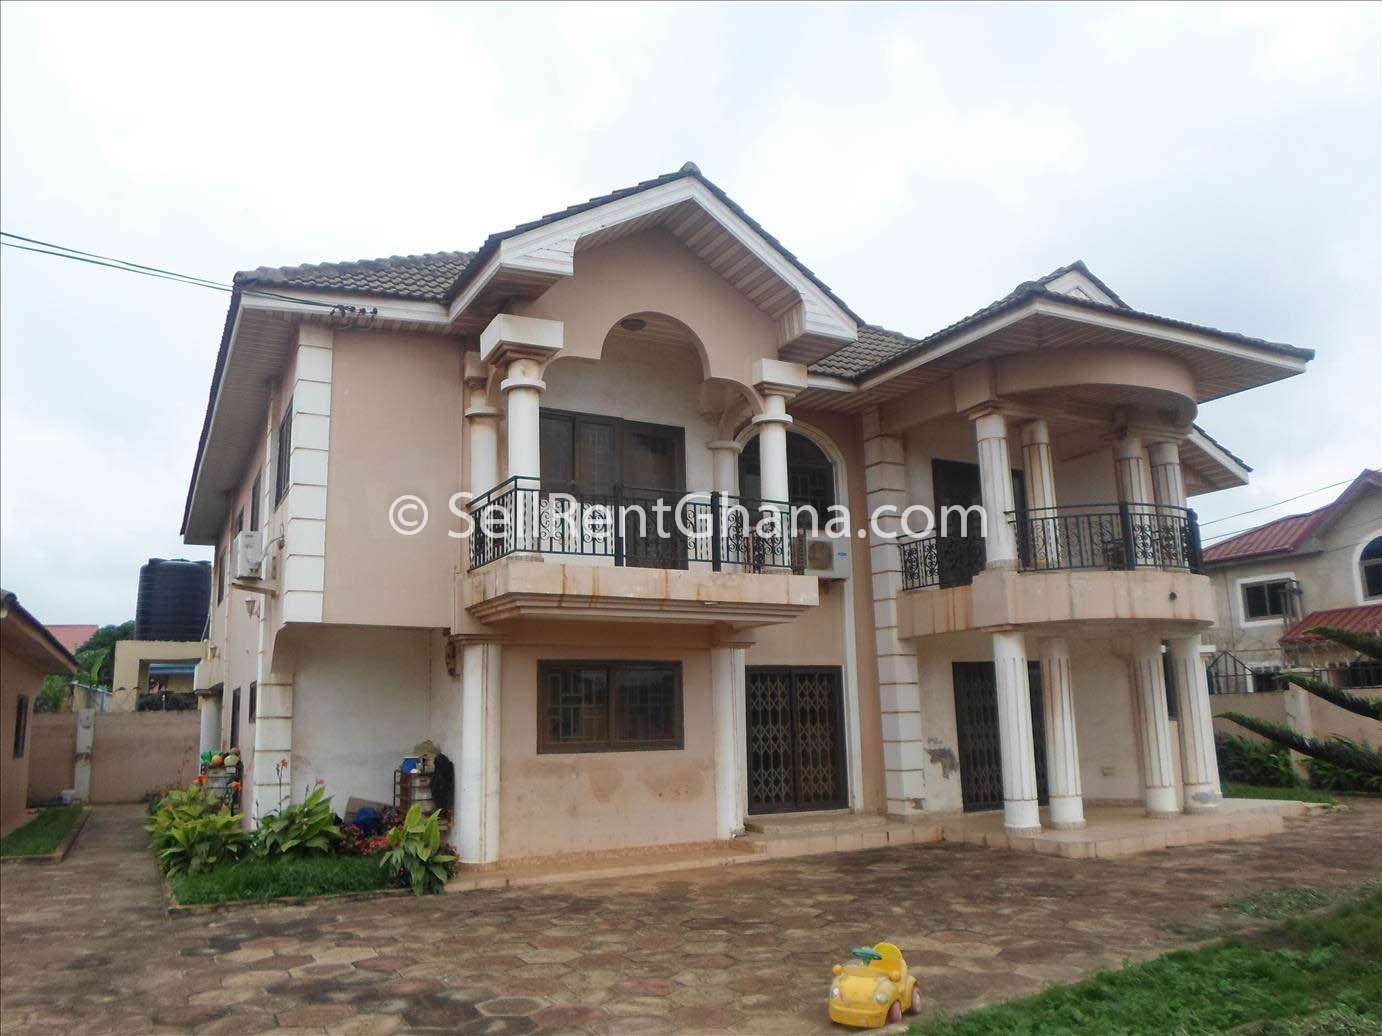 6 bedroom house for sale in spintex sellrent ghana for Six bedroom house for sale